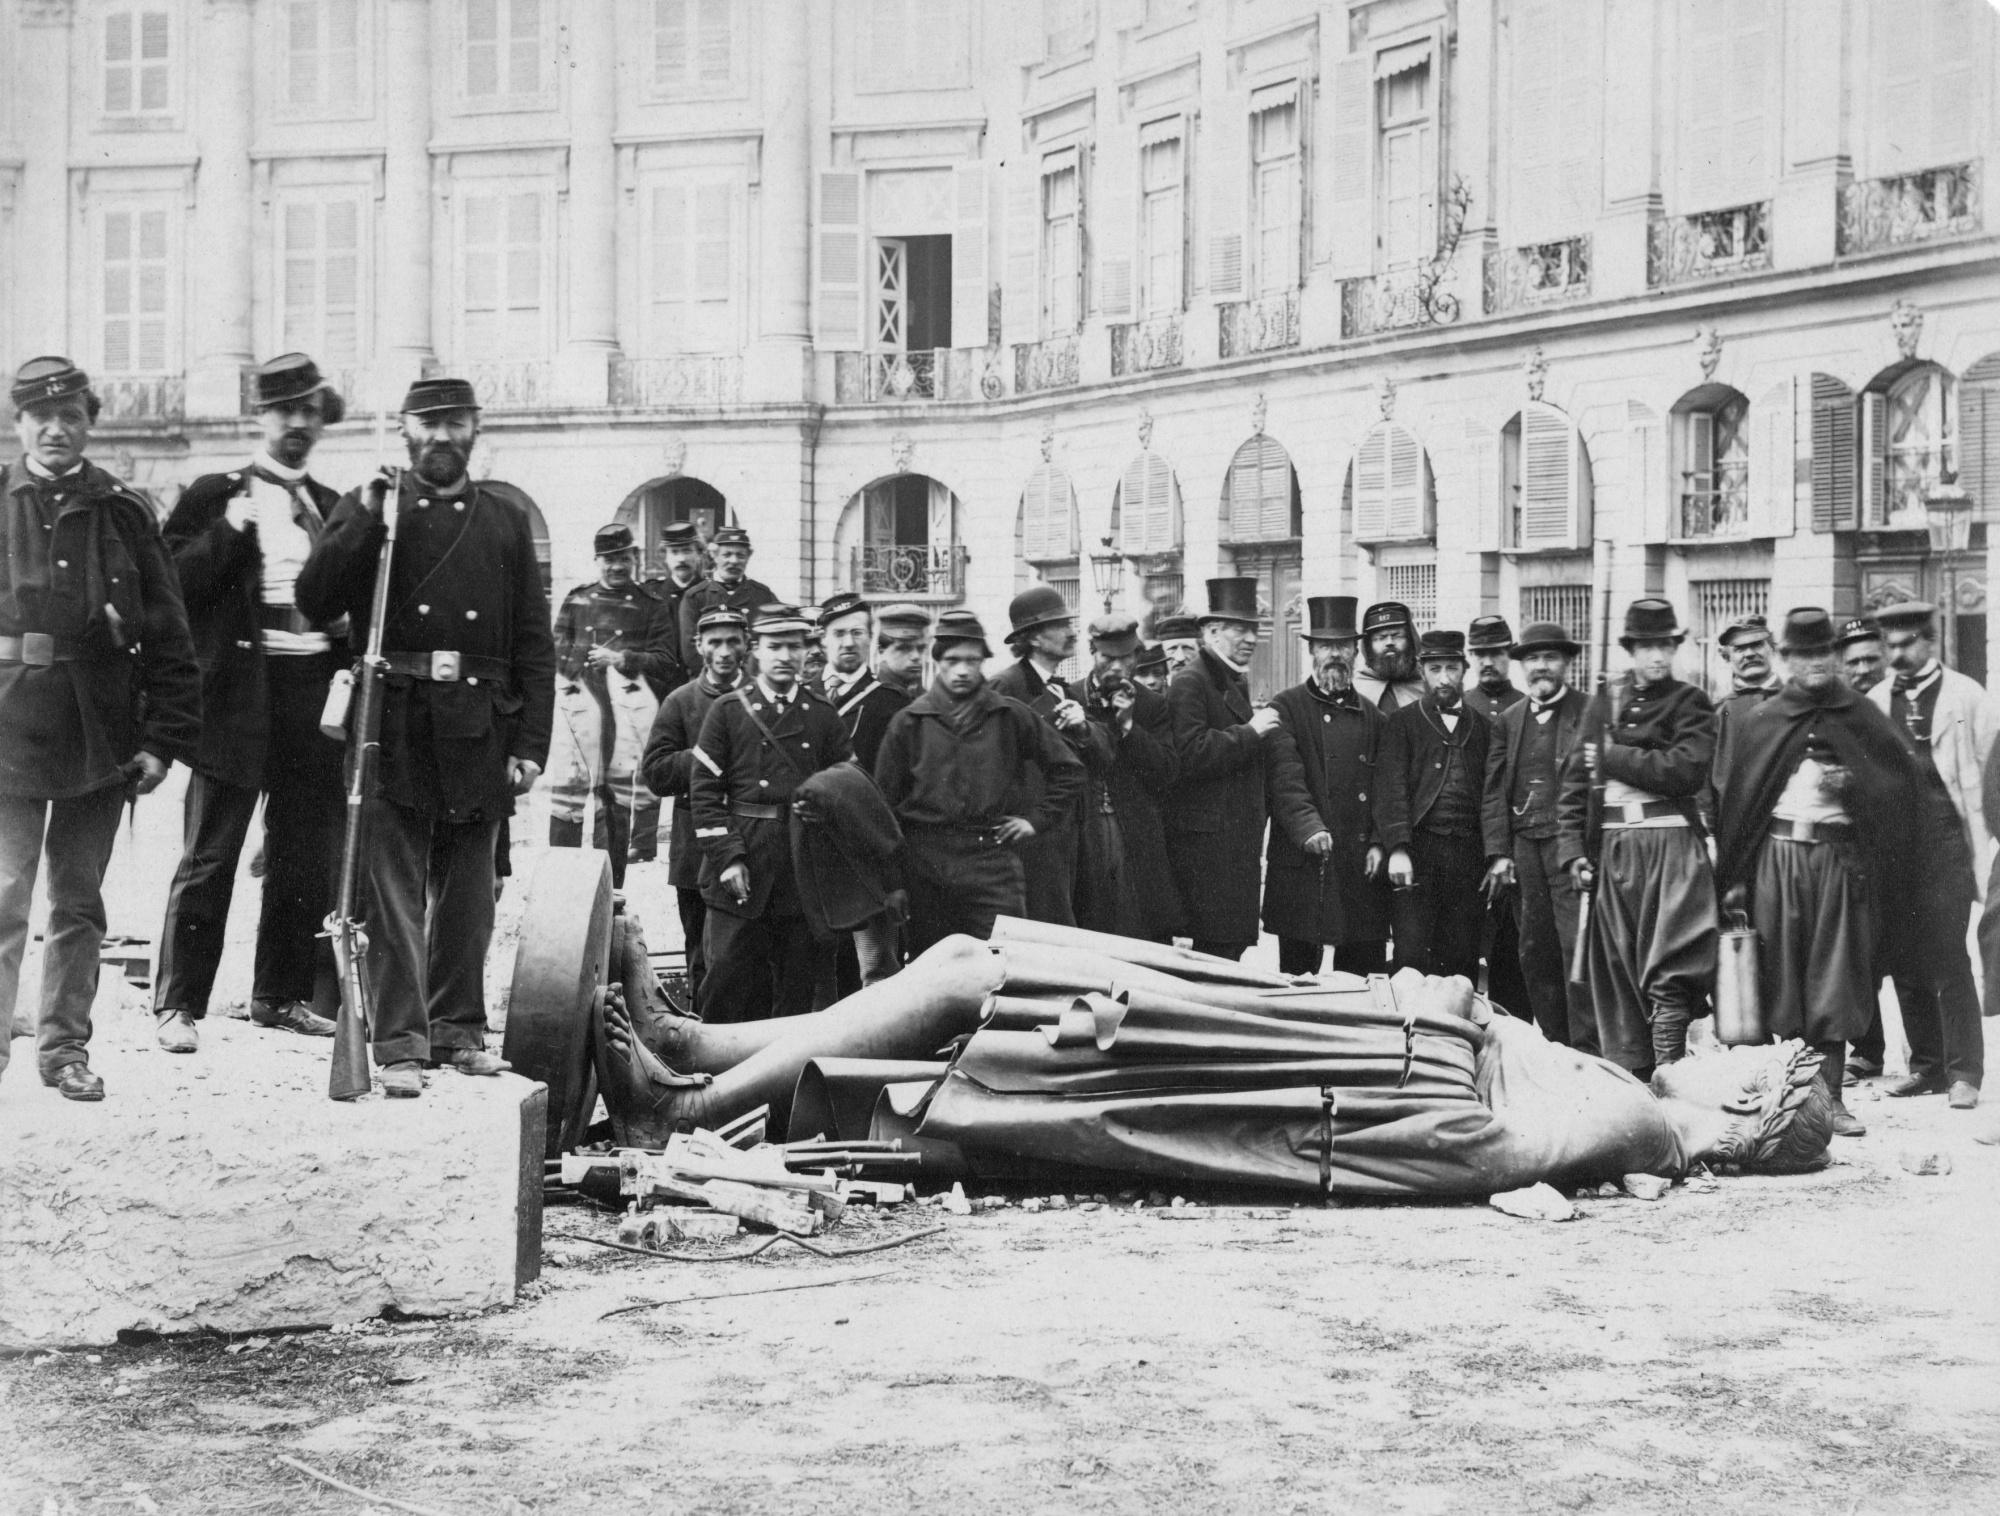 Destruction of the Vendome Column during the Paris Commune. The column's destruction realized an official proposition made the previous September by painter Gustave Courbet, who, after the collapse of the Commune, was sentenced to six months in prison and later ordered to pay for putting the column back up. He could never pay, and died soon after in exile. Colonne vendome.jpg